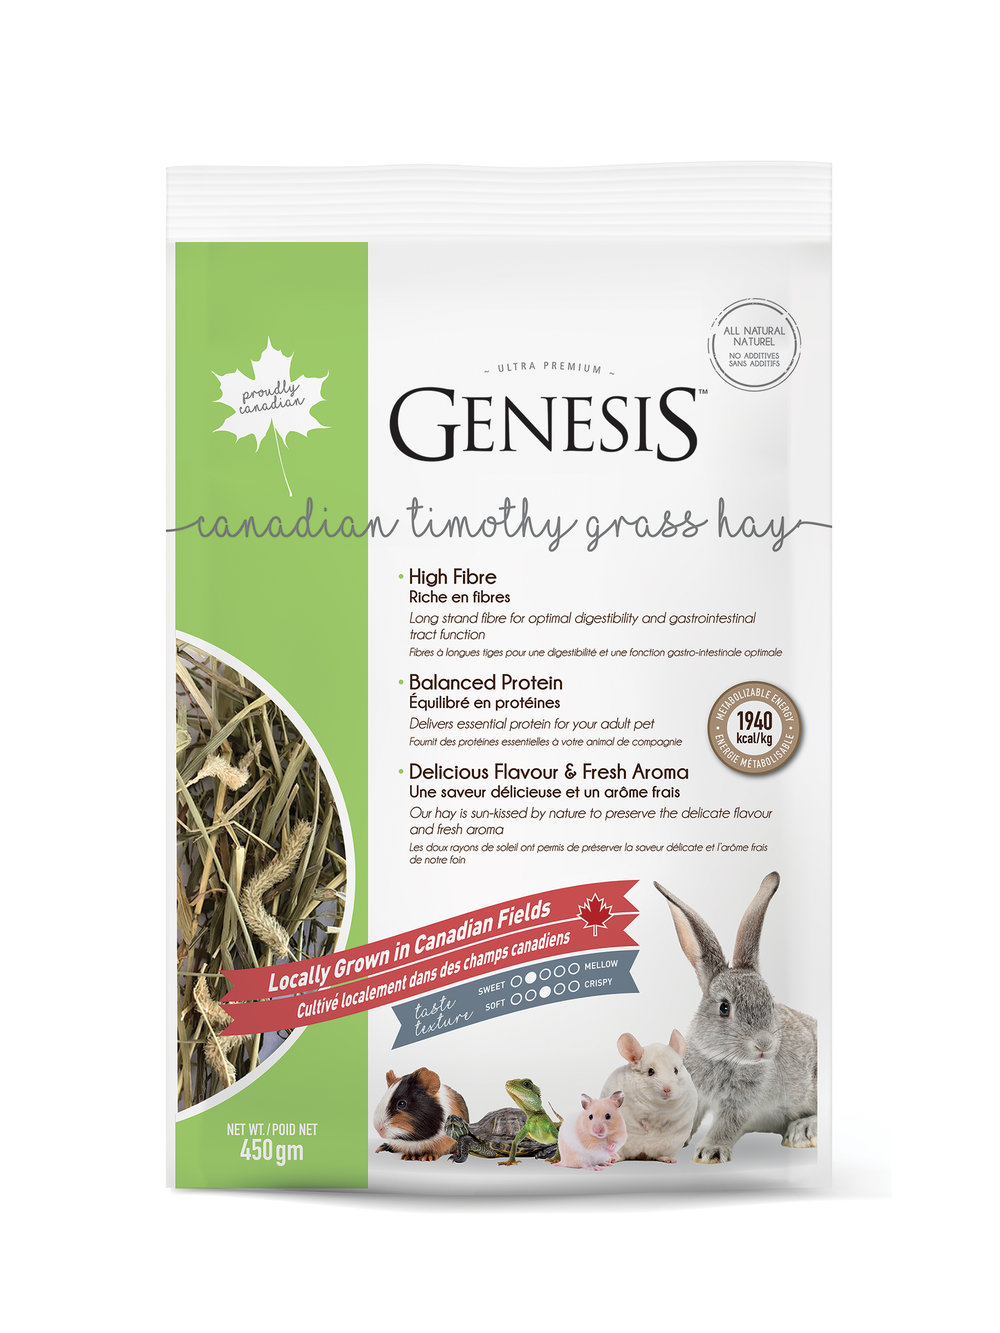 Genesis 100% Canadian Timothy Grass Hay - is a delicious mix of sun-kissed hay offering exceptional flavour and fragrance that will keep your pet coming back for more.